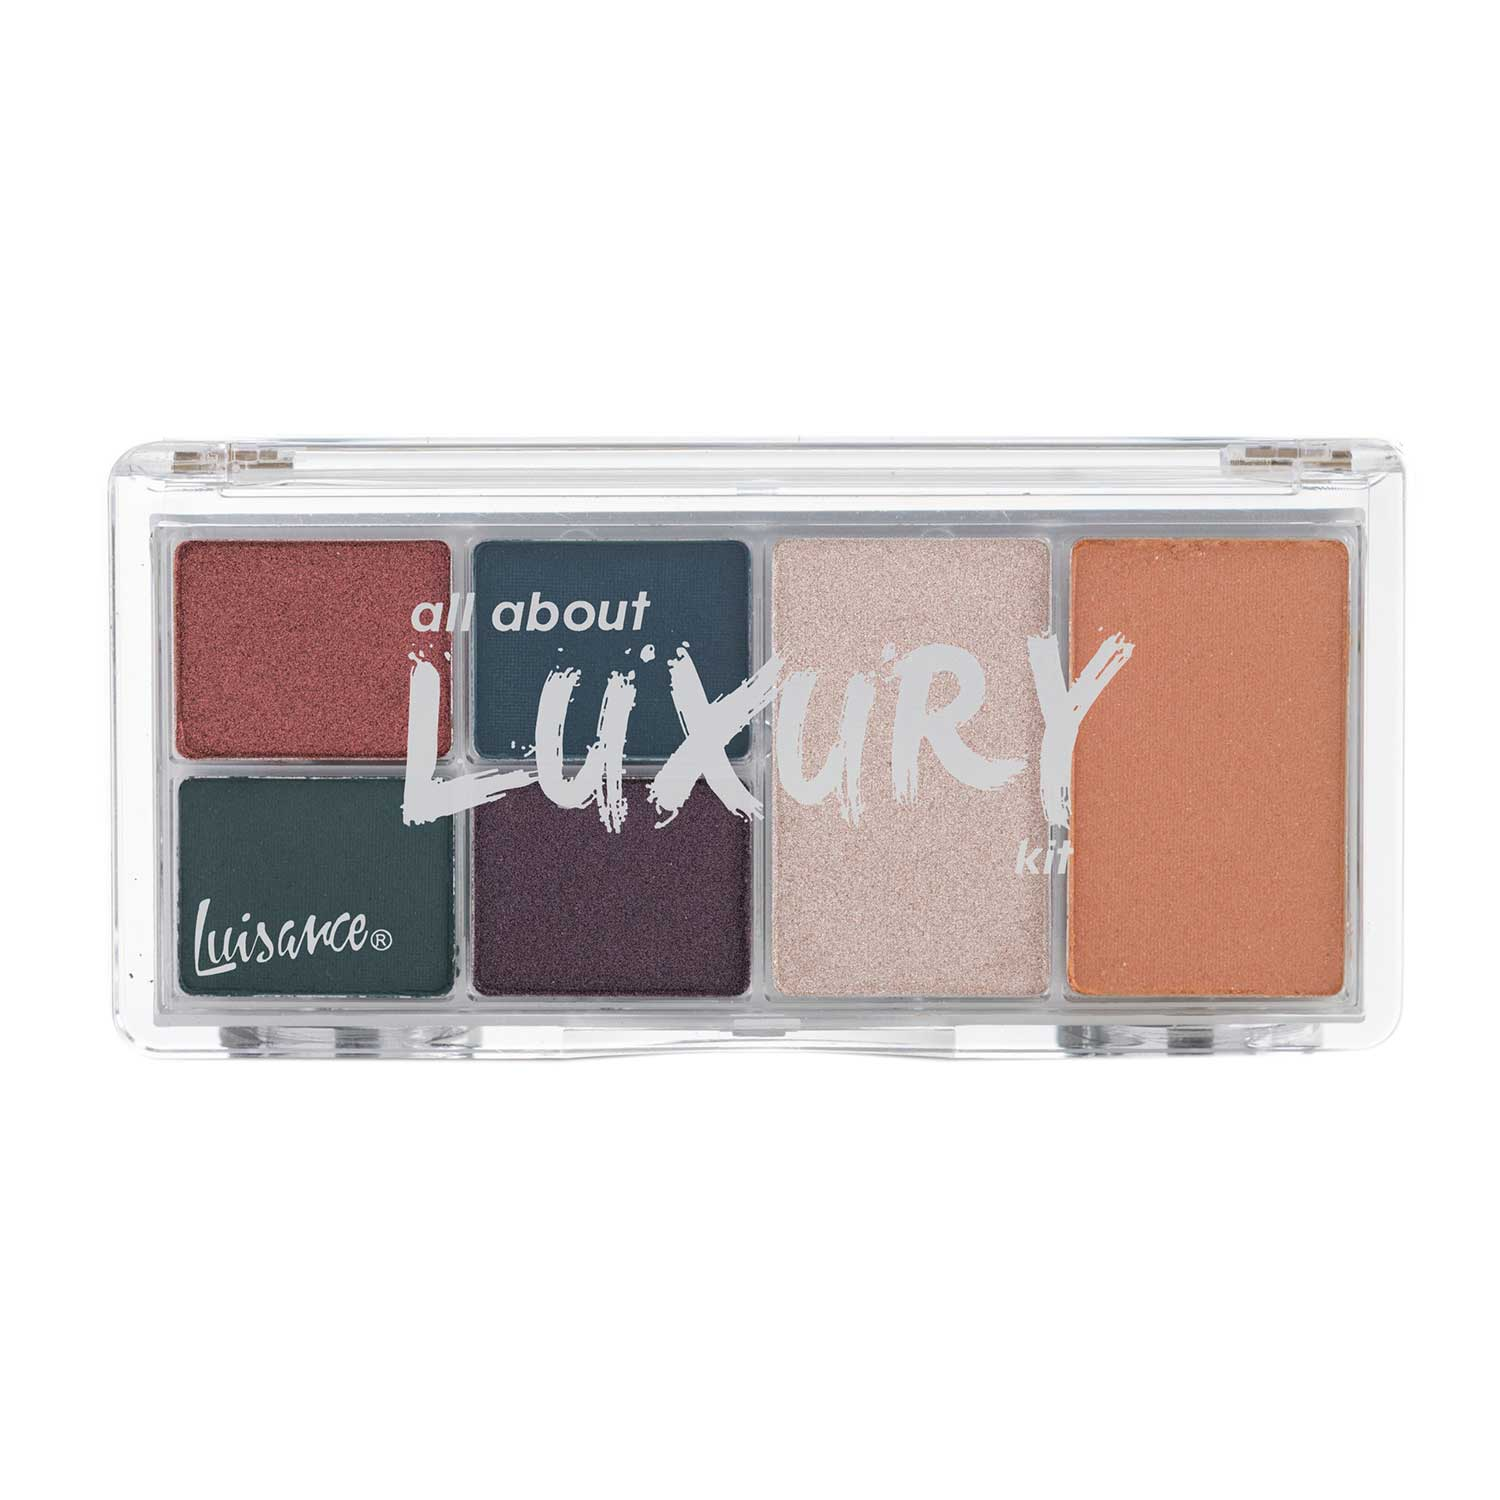 Paleta de Maquiagem All About Luxury Kit Luisance L2020 Cor B